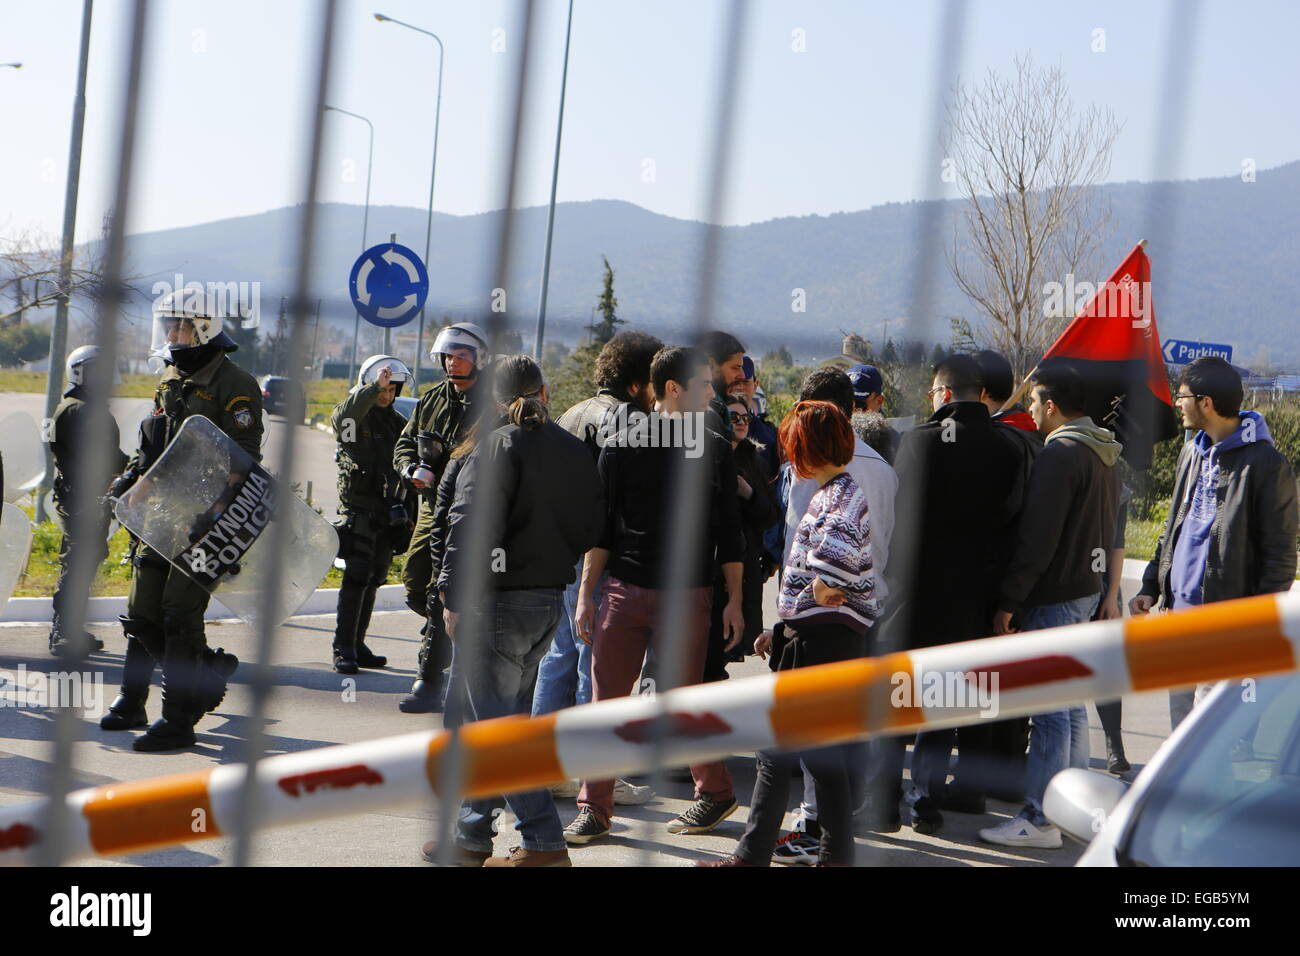 Athens, Greece. 21st February 2015. The last protesters get expelled from the police academy. Minor scuffles between - Stock Image